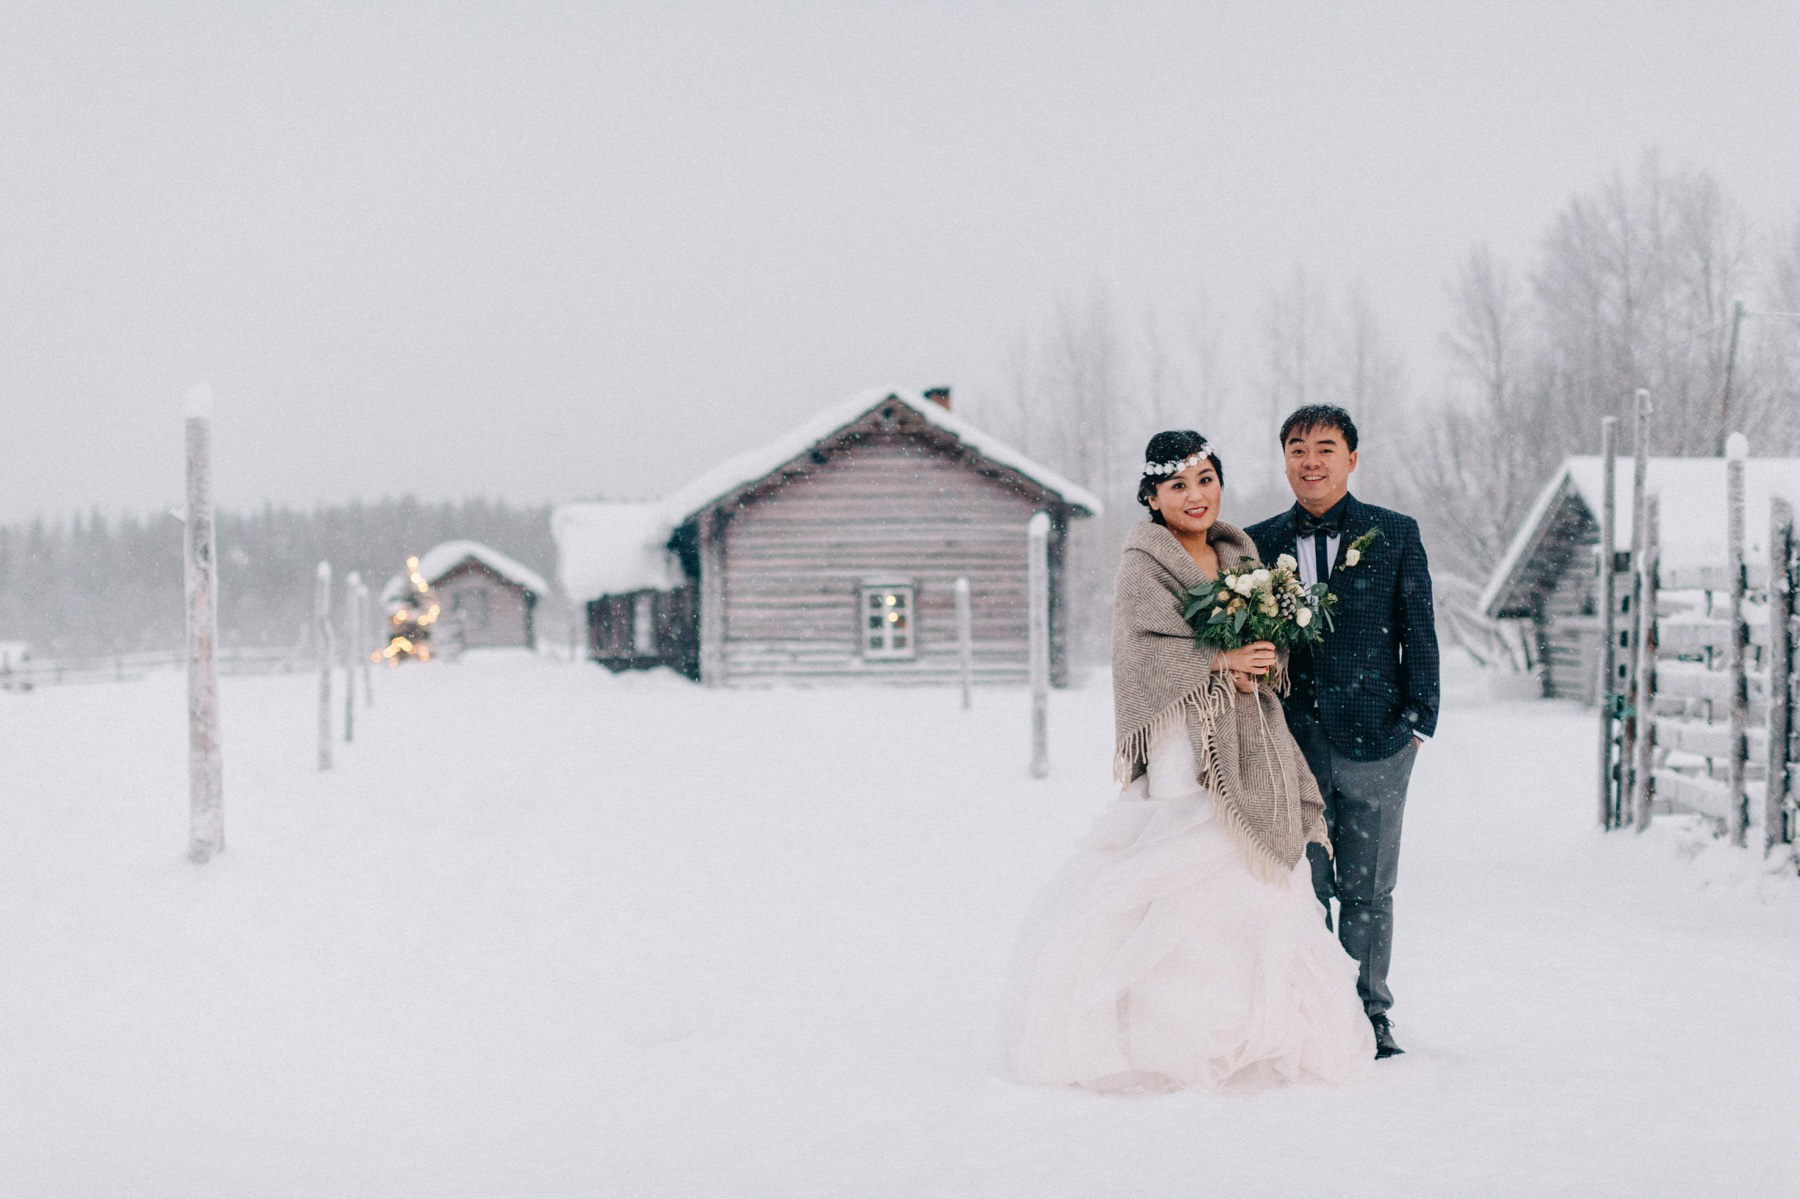 Lapland winter honeymoon